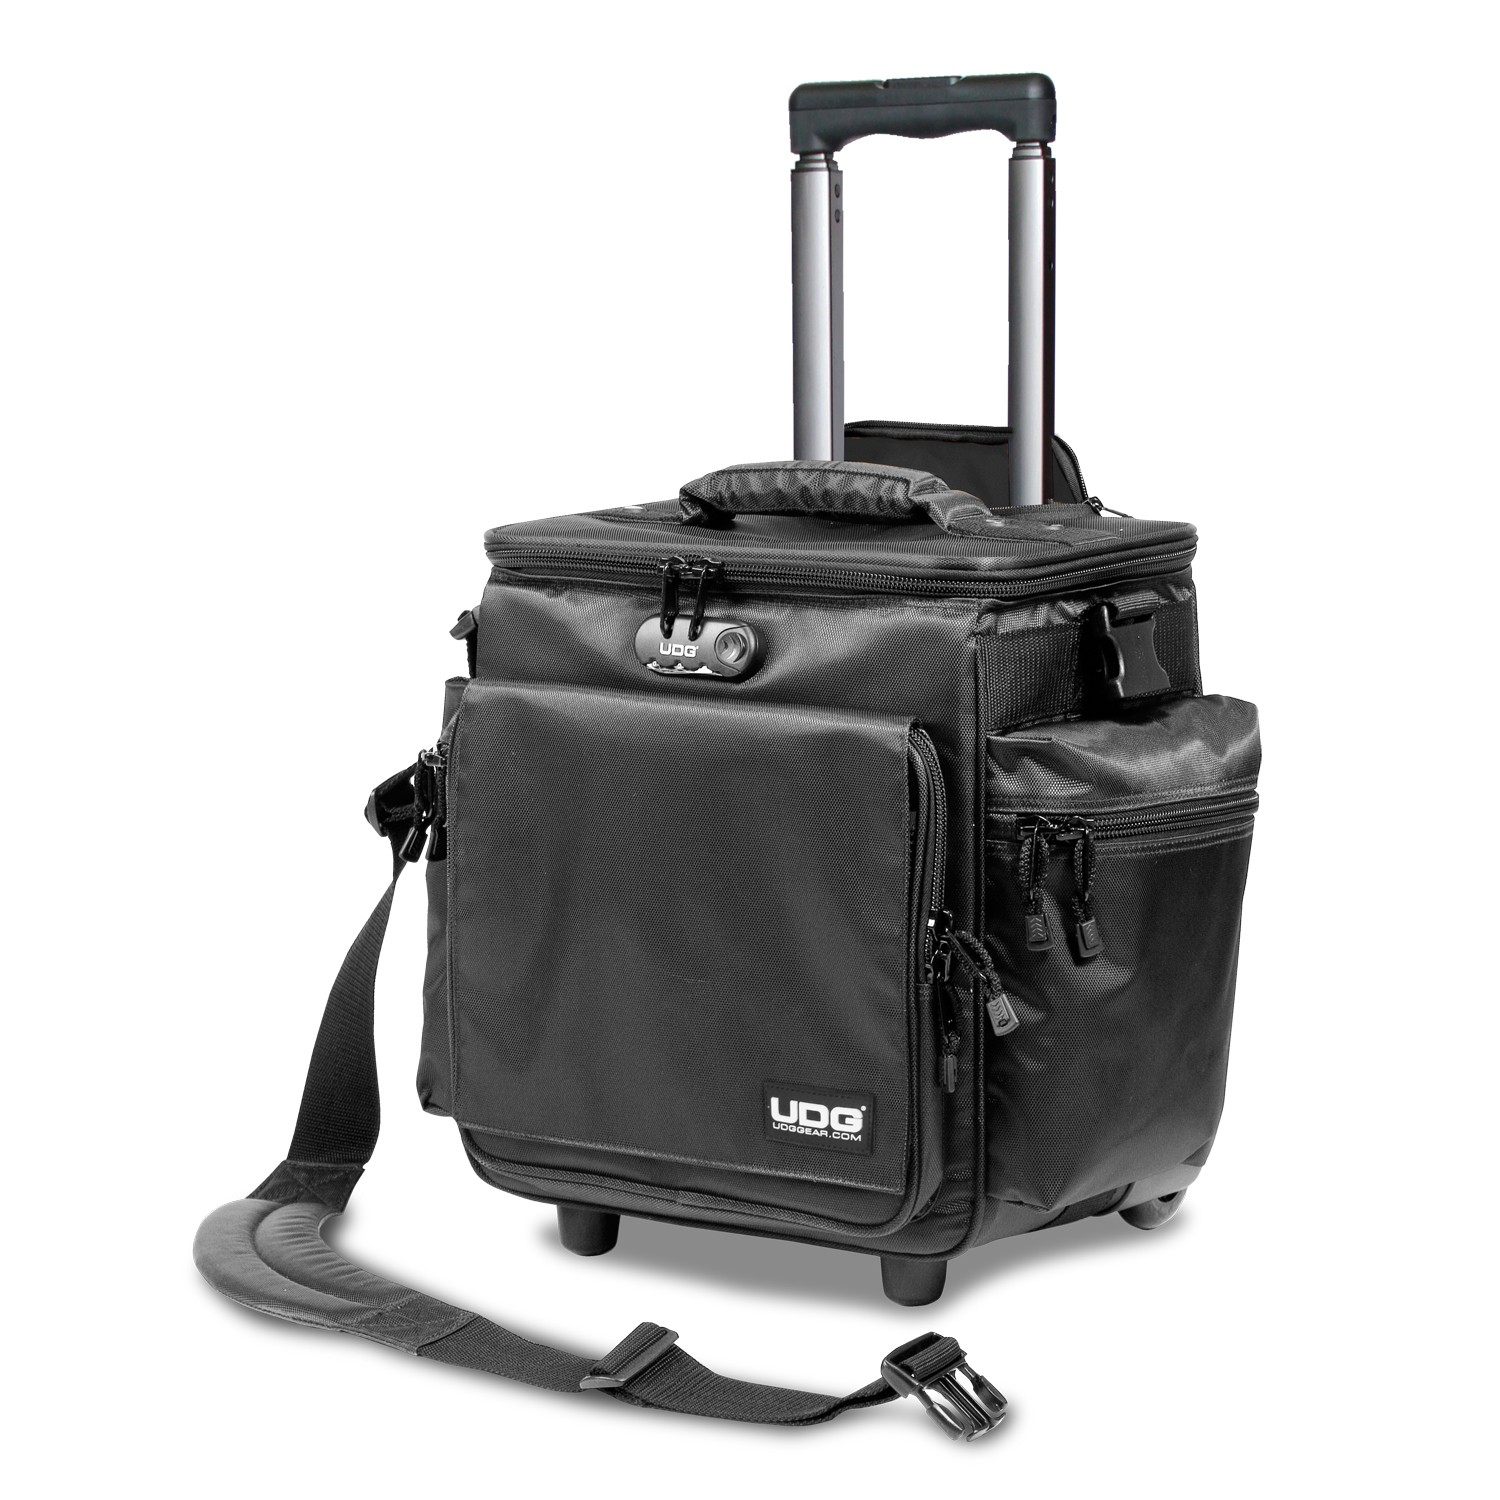 UDG Sling Bag Trolley Deluxe Black BhsBHPEk